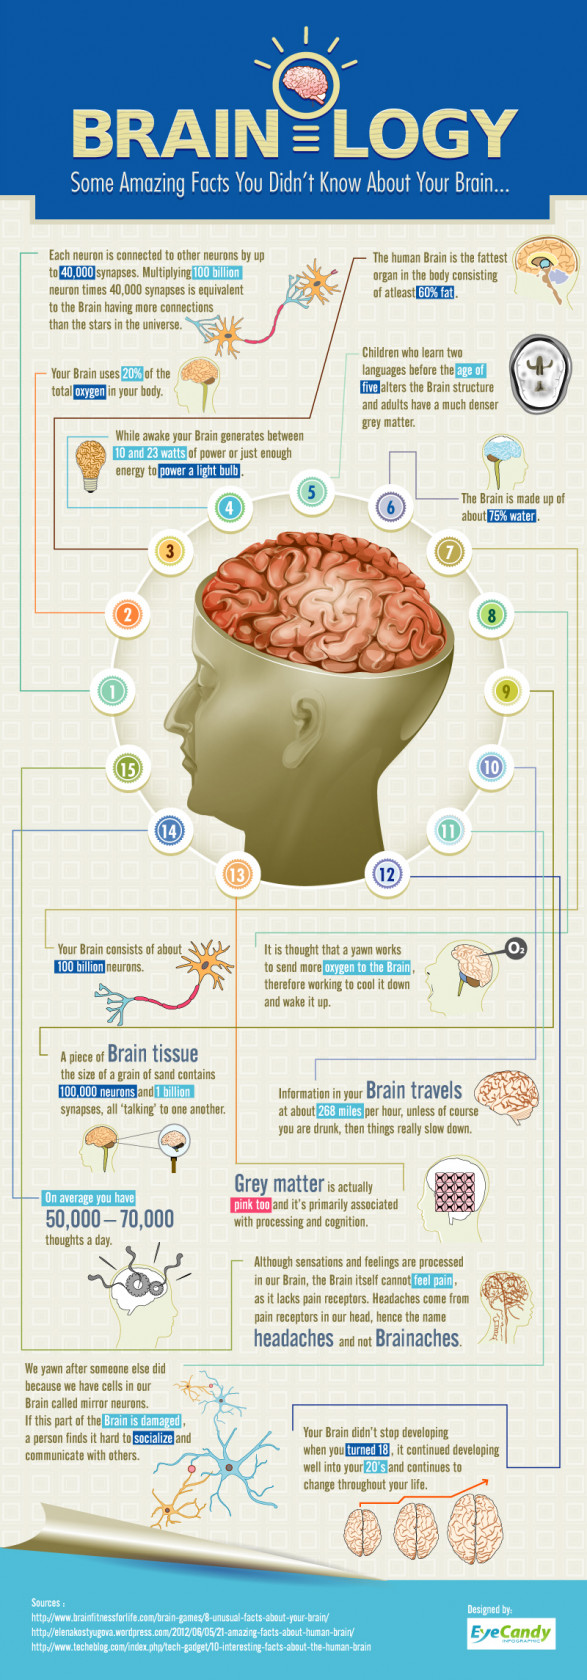 brainology some amazing facts you didnt know about your brain 519a2c0a6a4c9 w587 Interesting facts about the brain